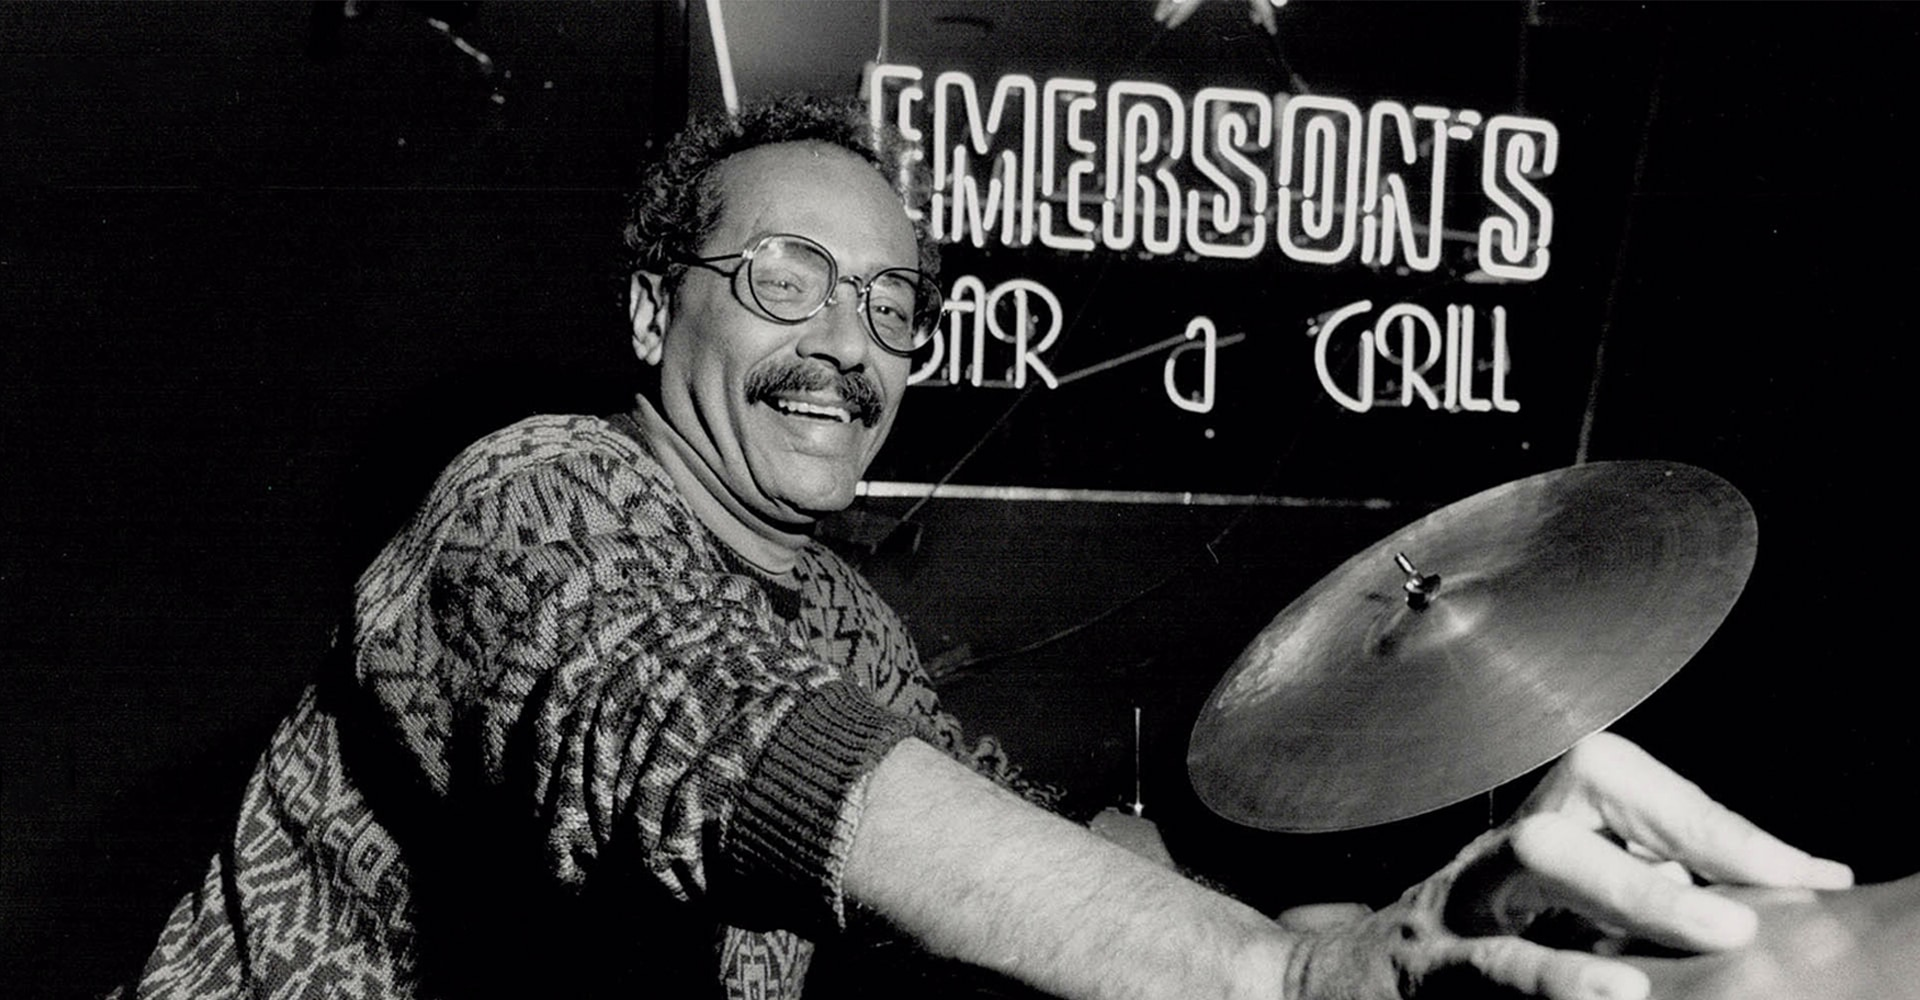 "A man with a moustache and glasses, with his sleeves rolls up, and his hand place on a cymbal of a drum kit. Behind him is a neon sign that reads ""Emerson's Bar & Grill""."